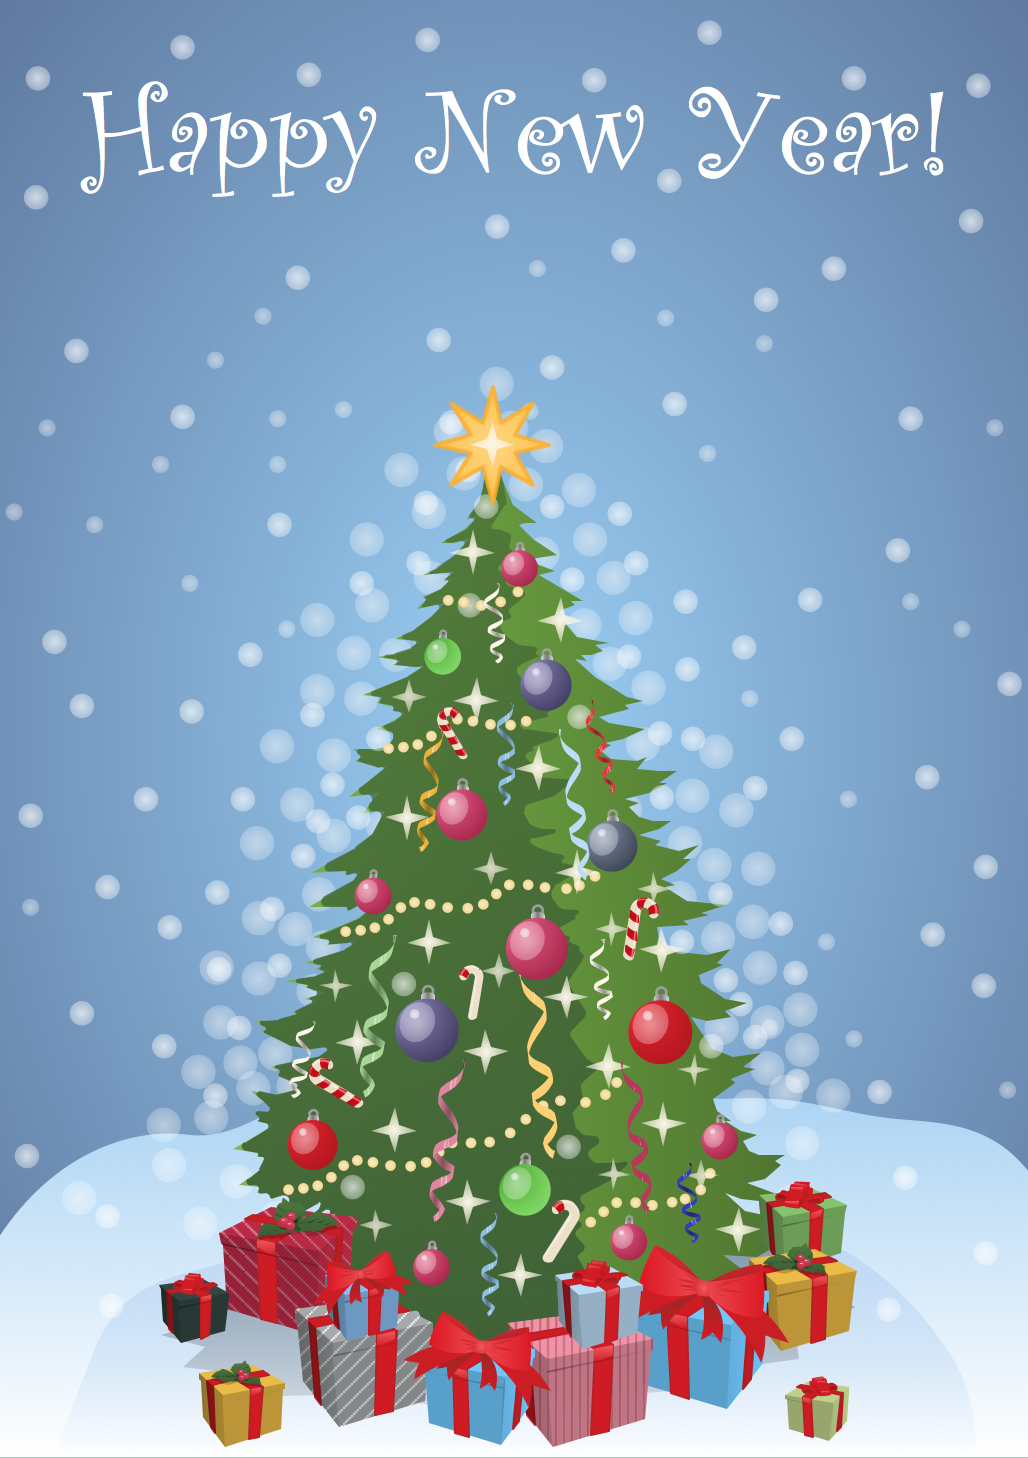 New Year Card — Christmas Tree with Gifts